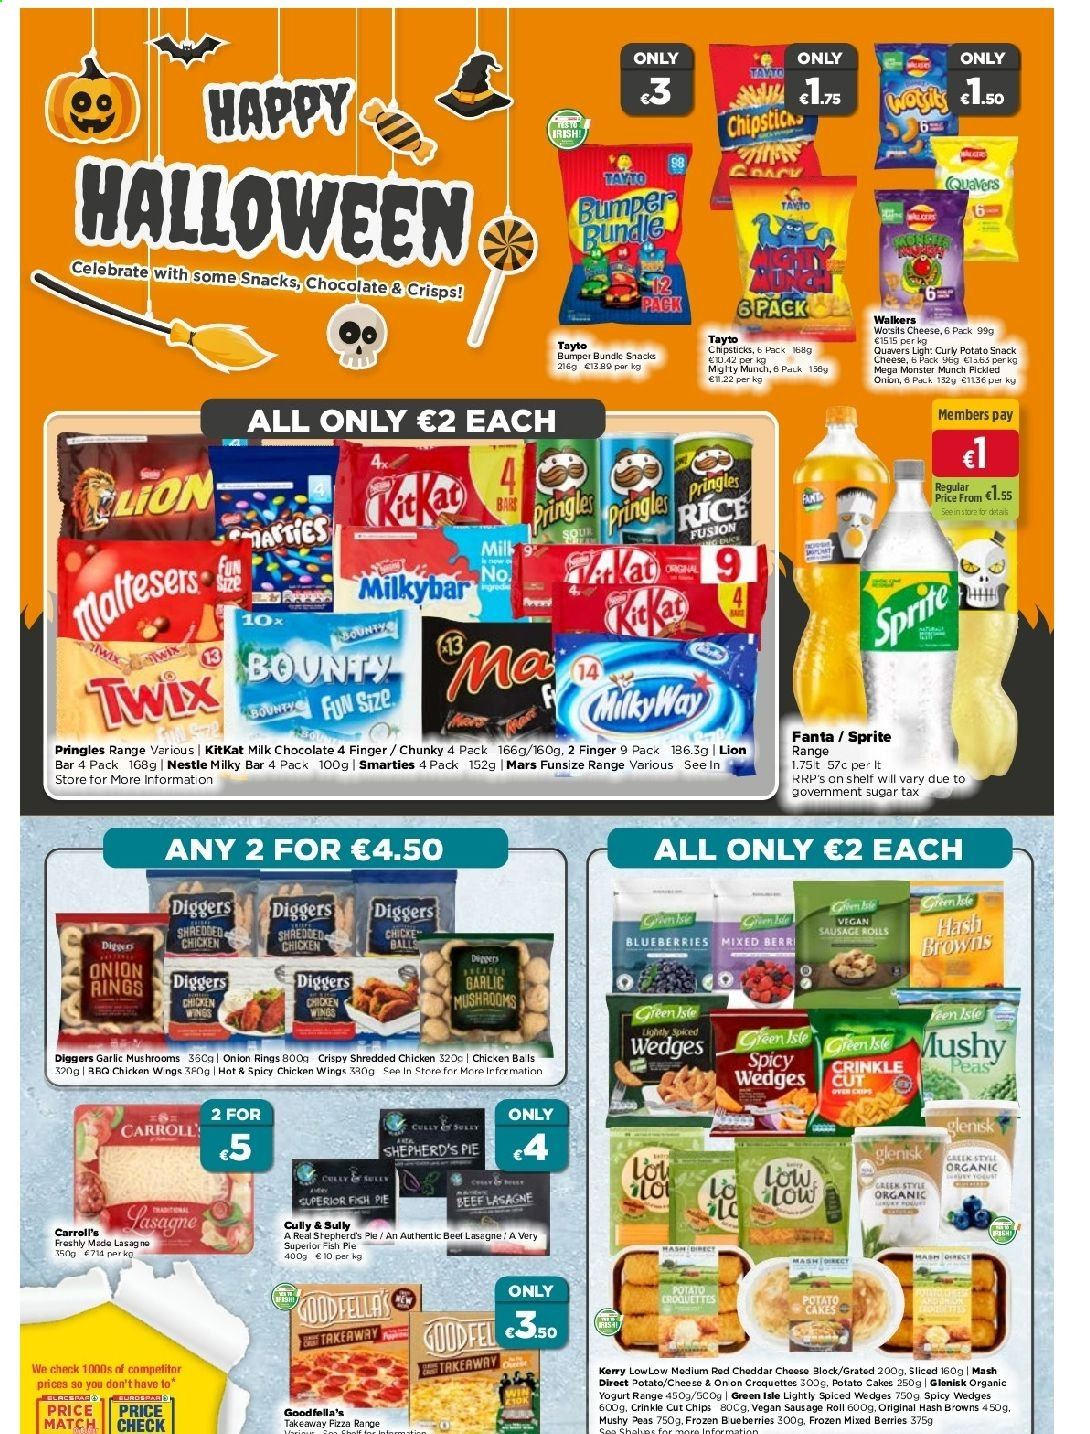 EUROSPAR offer  - 22.10.2020 - 11.11.2020 - Sales products - blueberries, bundle, frozen, garlic, lasagne, milk chocolate, mushrooms, nestlé, ring, sausage, sausage roll, sprite, sugar, vegan, yogurt, hash browns, pringles, cheddar, chicken, peas, onion rings, onion, organic, chicken wings, chips, chocolate, cheese, pie, snack, fanta, rod, monster, bar, twix, bounty, mars, smarties, rice bar, wings, kitkat, finger, rolls, fish. Page 4.